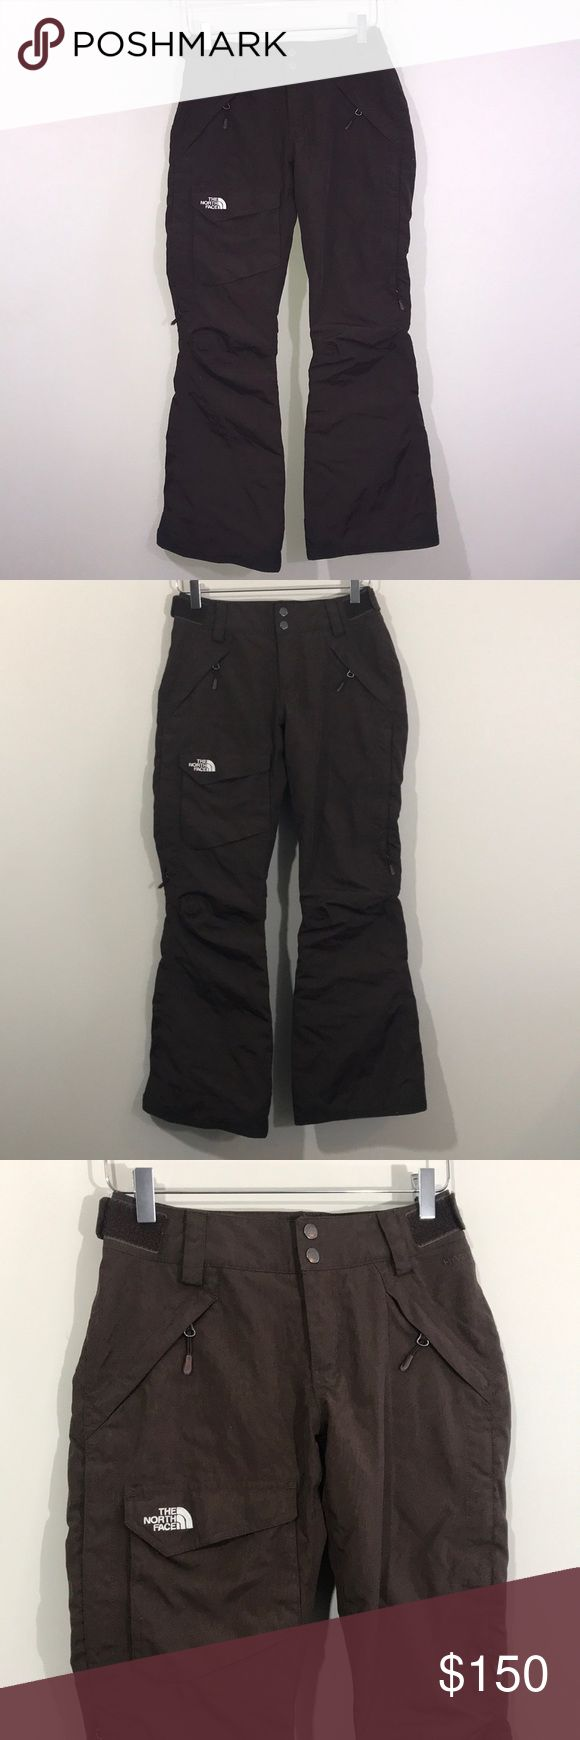 The North Face Women's Freedom Lrbc Insulated Pant • Waterproof, breathable, fully seam sealed HyVent fabric on the exterior, coupled with thermal Heatseeker Eco insulation for optimal warmth • Low-rise boot cut is the most flared style available, with a neutral fit around the waist, and athletic fit around the knees with a flared bottom • Cargo pocket at right thigh bellows outward while Chimney Venting system zip at sides of thighs works to promote airflow. • Waterproof, breathable, fully…